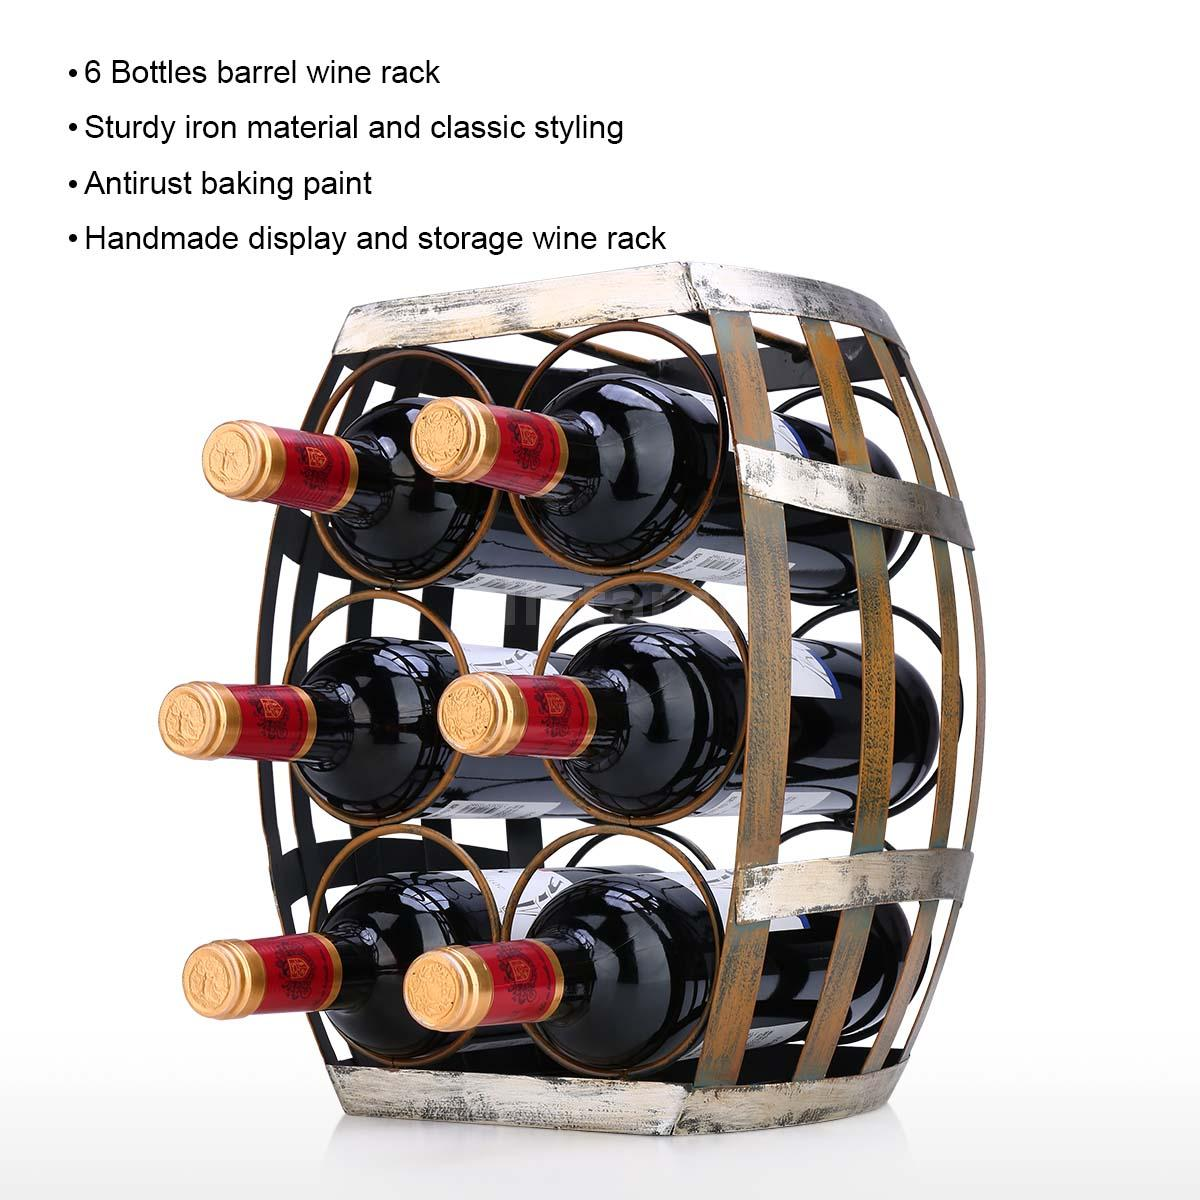 Tooarts 6 Bottles Wine Rack Tabletop Barrel Wine Rack Sturdy Home Decor V3f8 Ebay